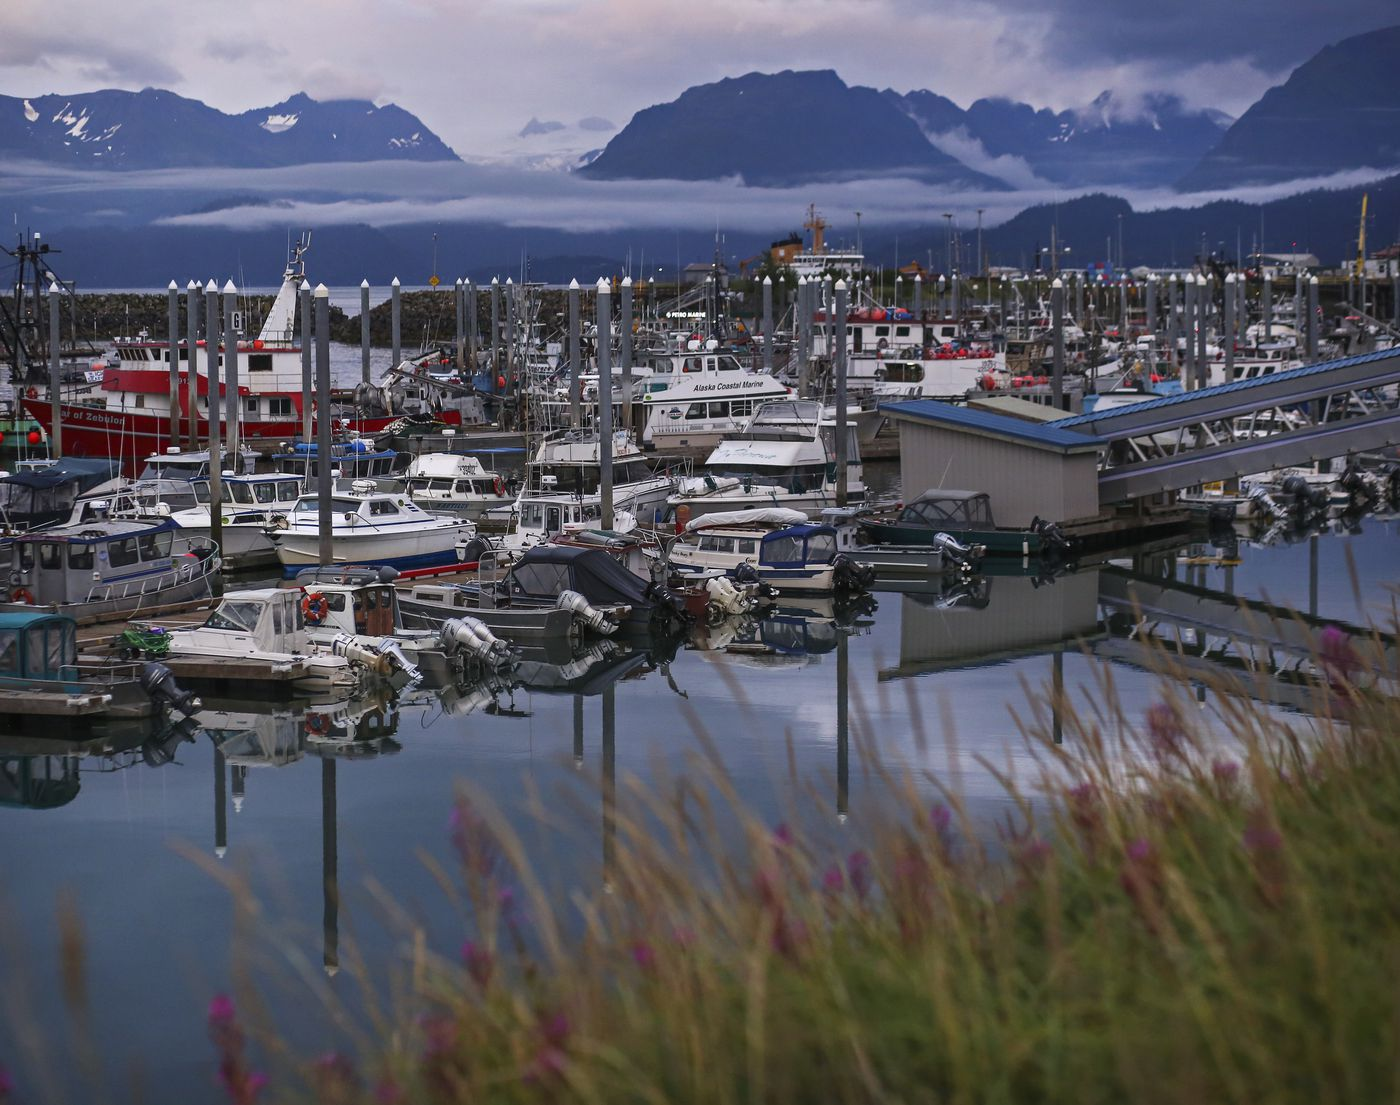 The Homer Boat Harbor photographed on Aug. 8, 2020. (Emily Mesner / ADN)